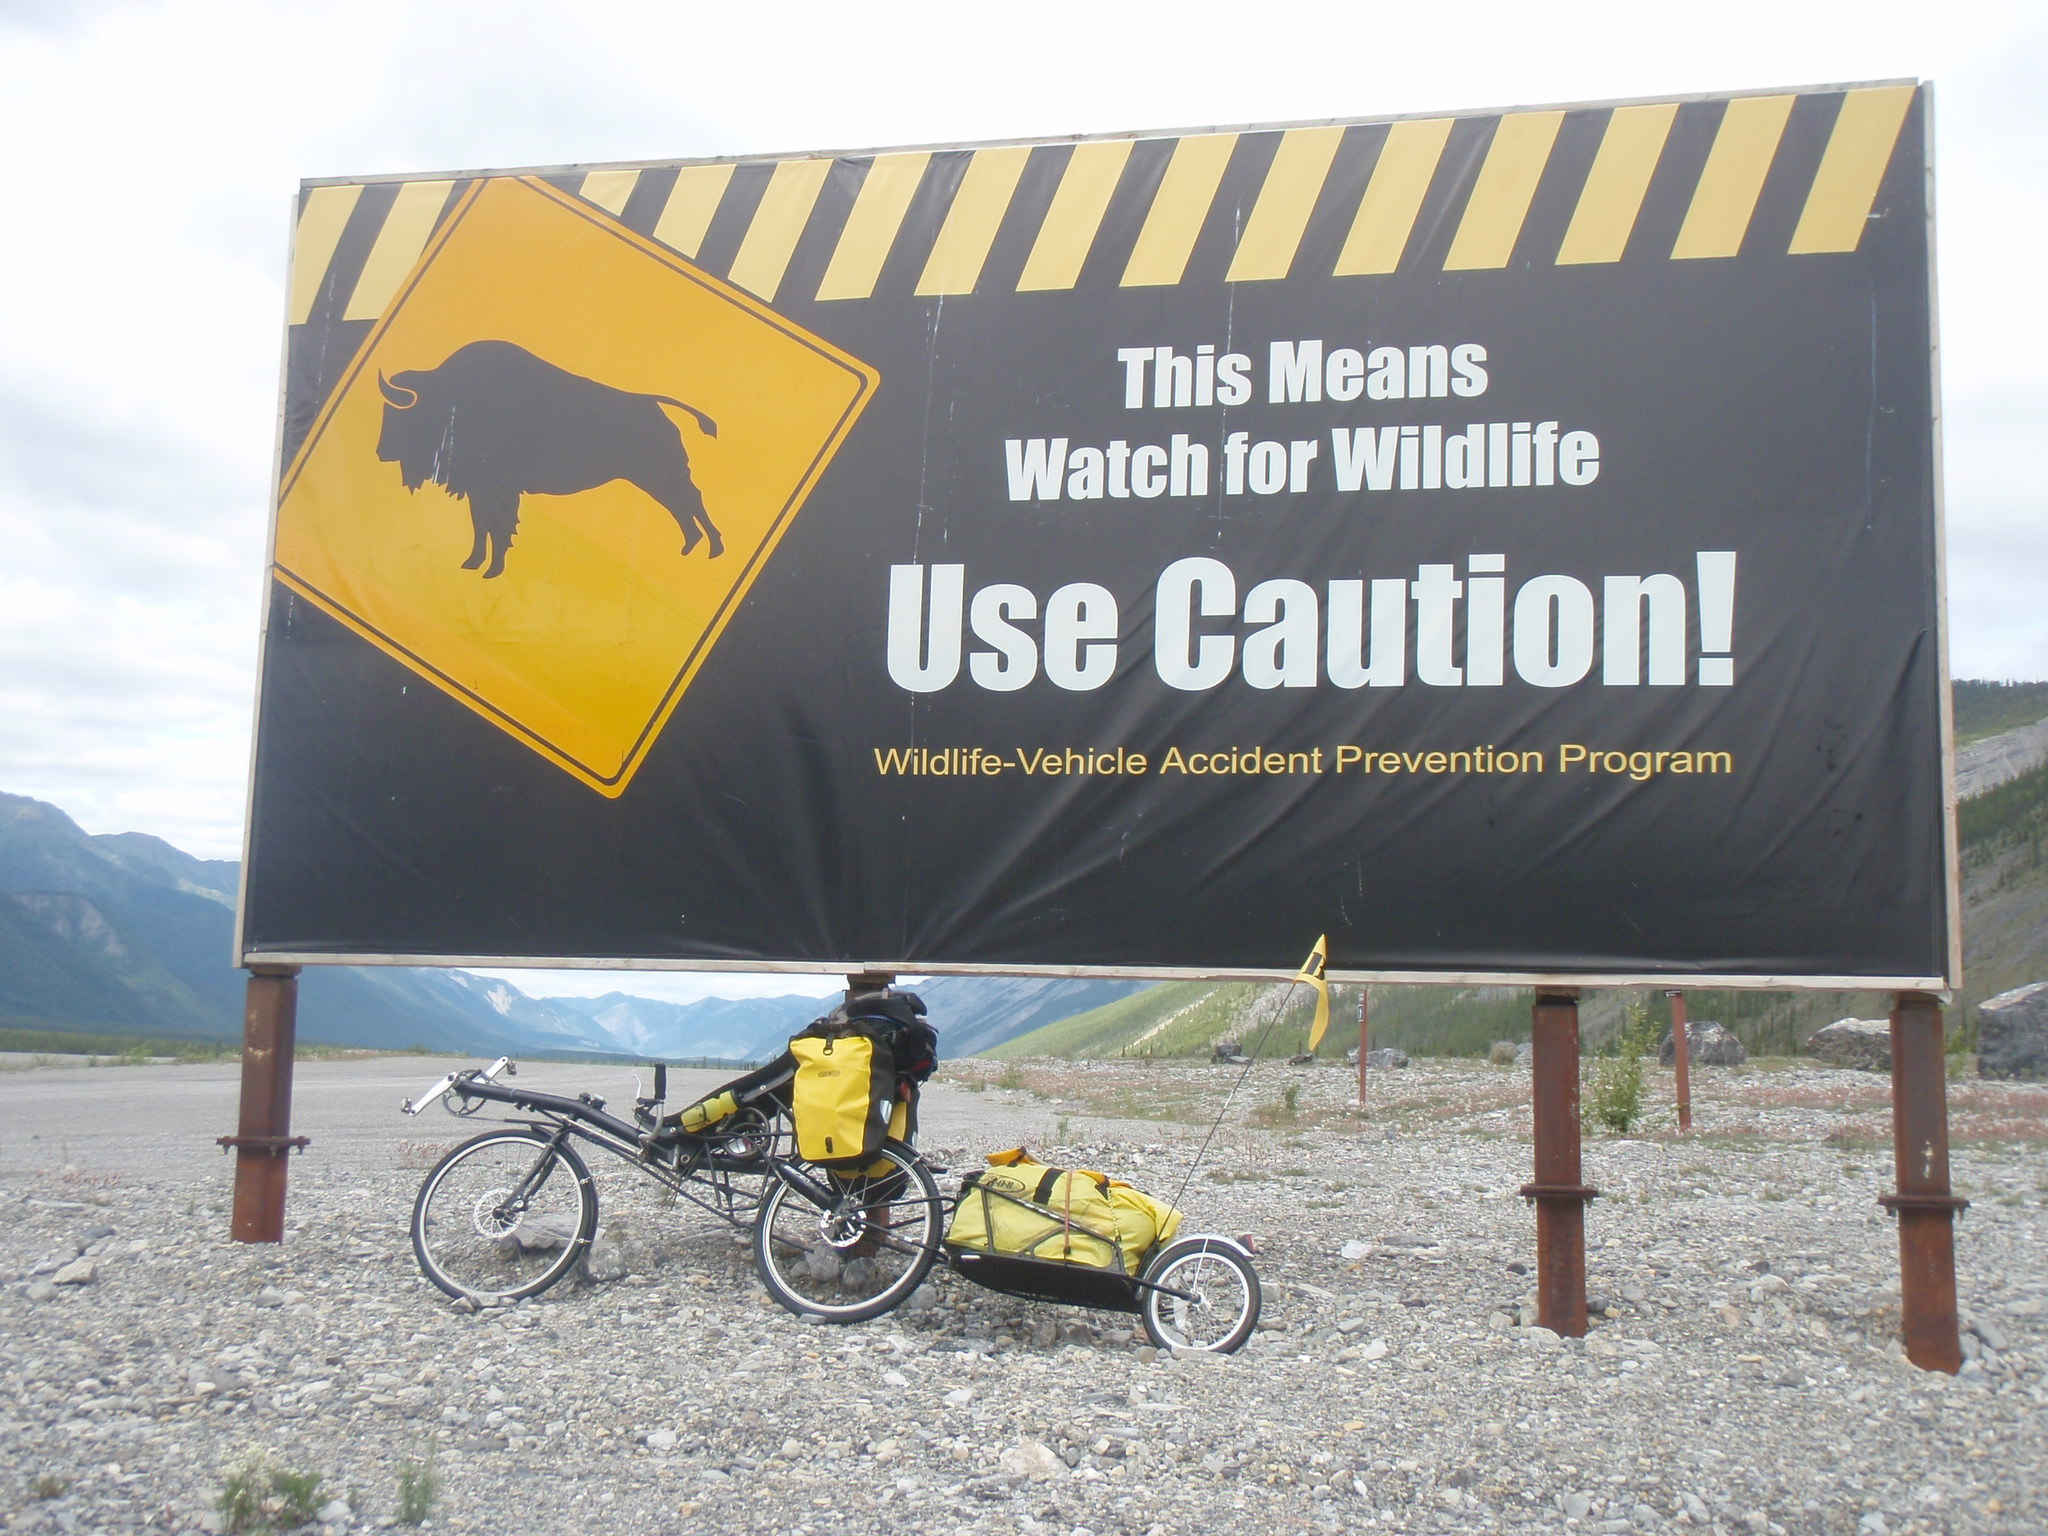 Wildlife is a real traffic hazard up here - including wild recumbents